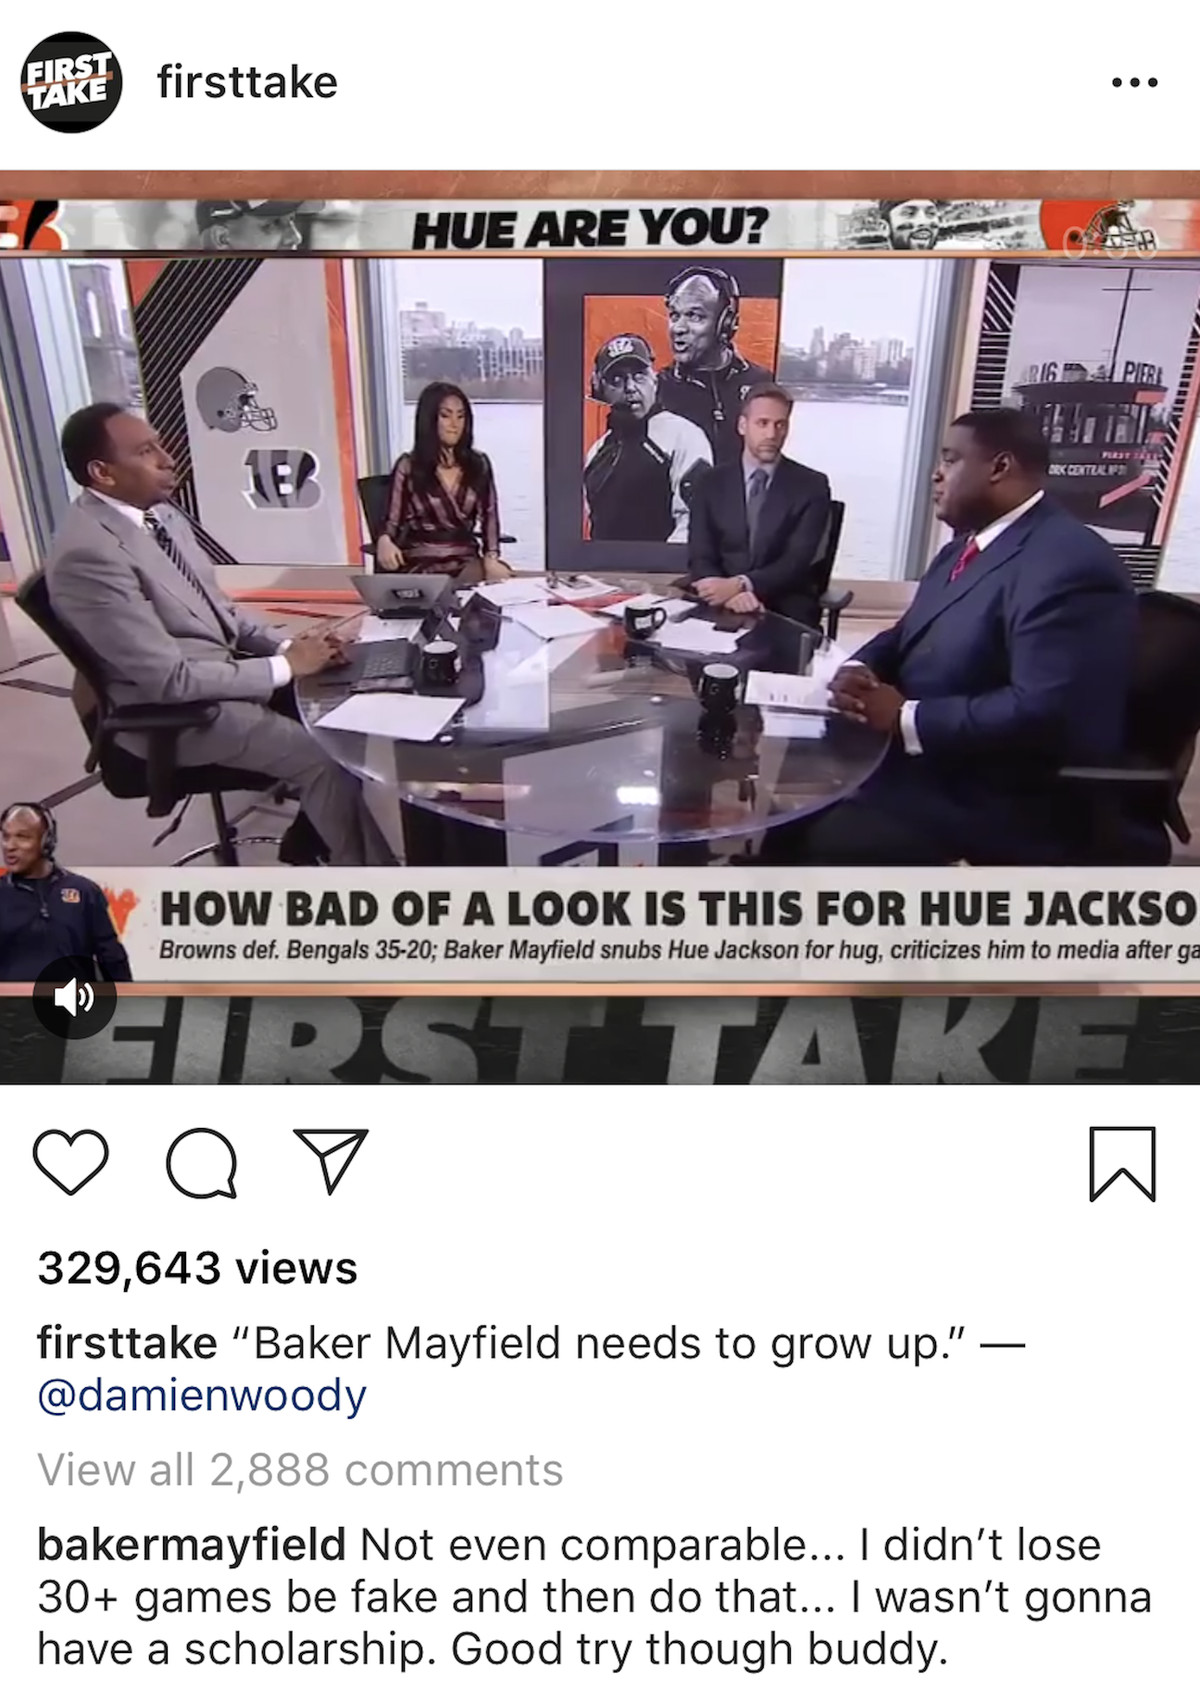 """Baker Mayfield commenting on an Instagram post disputing a Damien Woody claim that he """"needs to grow up"""" by saying """"Not even comparable... I didn't lose 30+ games be fake and then do that... I wasn't gonna have a scholarship. Good try though buddy."""""""